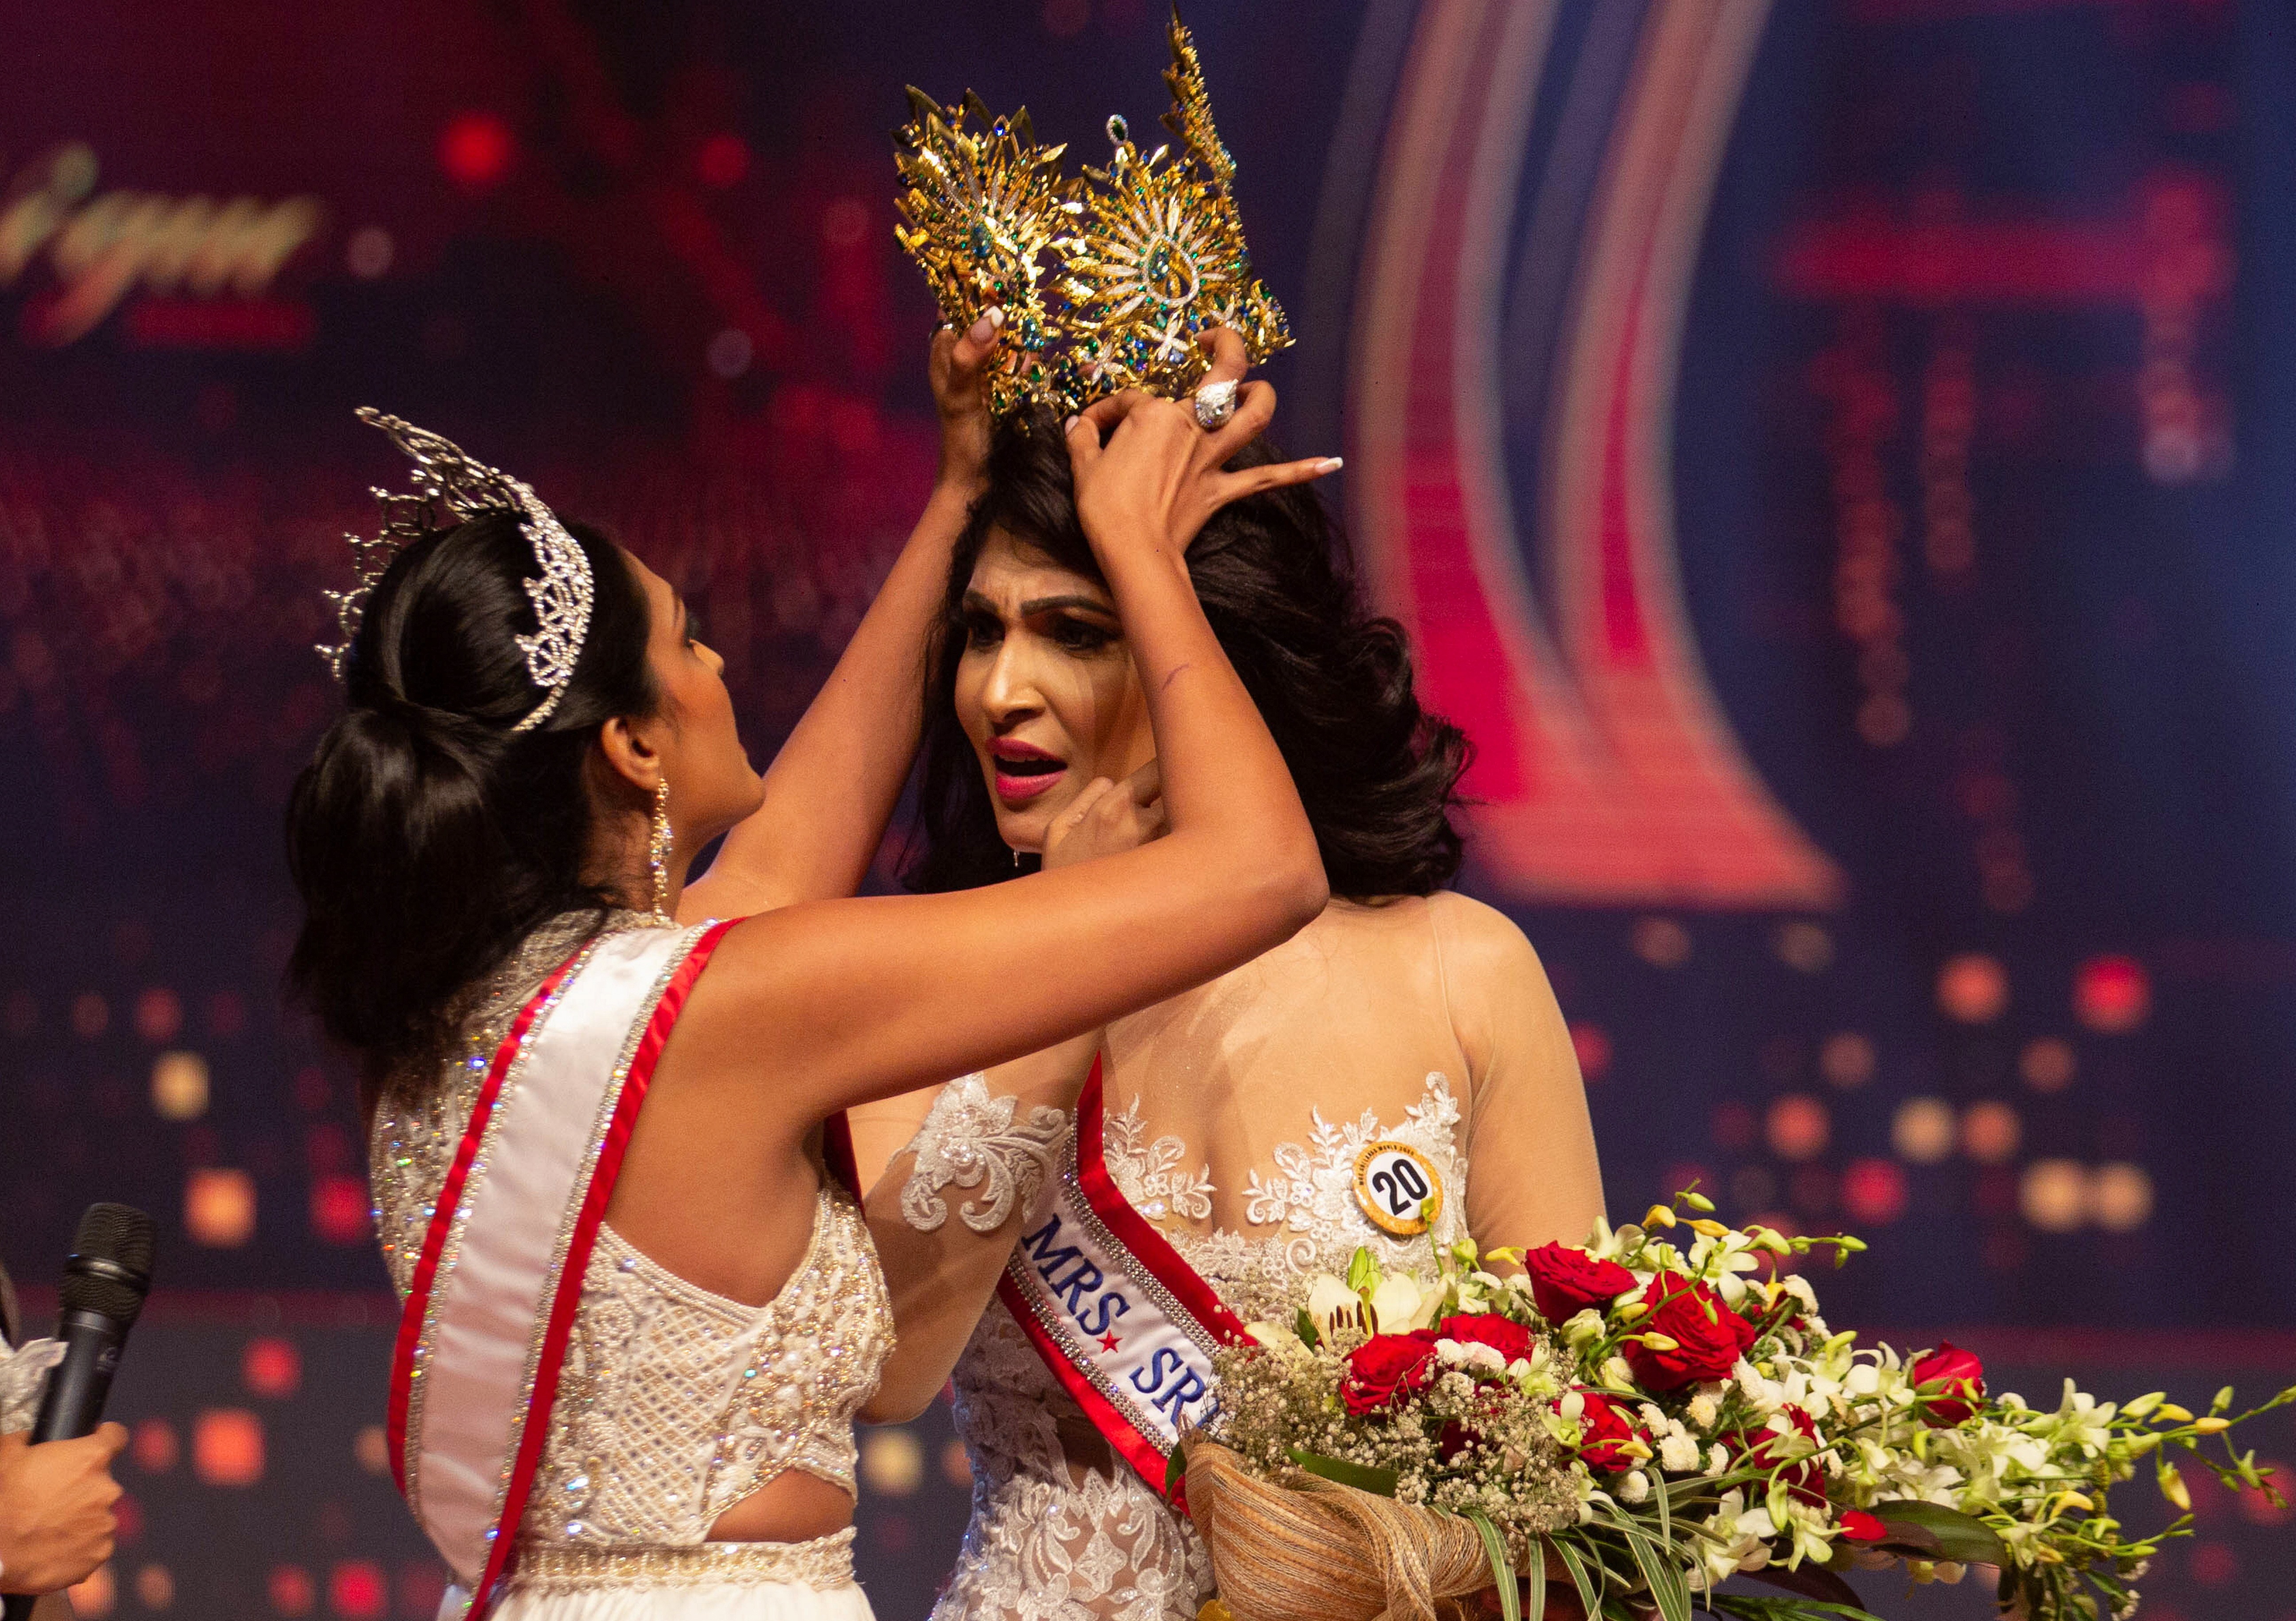 Reigning Mrs World Caroline Jurie, forcibly removes the Mrs Sri Lanka winner Pushpika De Silva's crown as Jurie declared that the winner was ineligible because she was divorced, during the Mrs Sri Lanka pageant, in Colombo, Sri Lanka April 4, 2021. REUTERS/Gimhana Pathirana